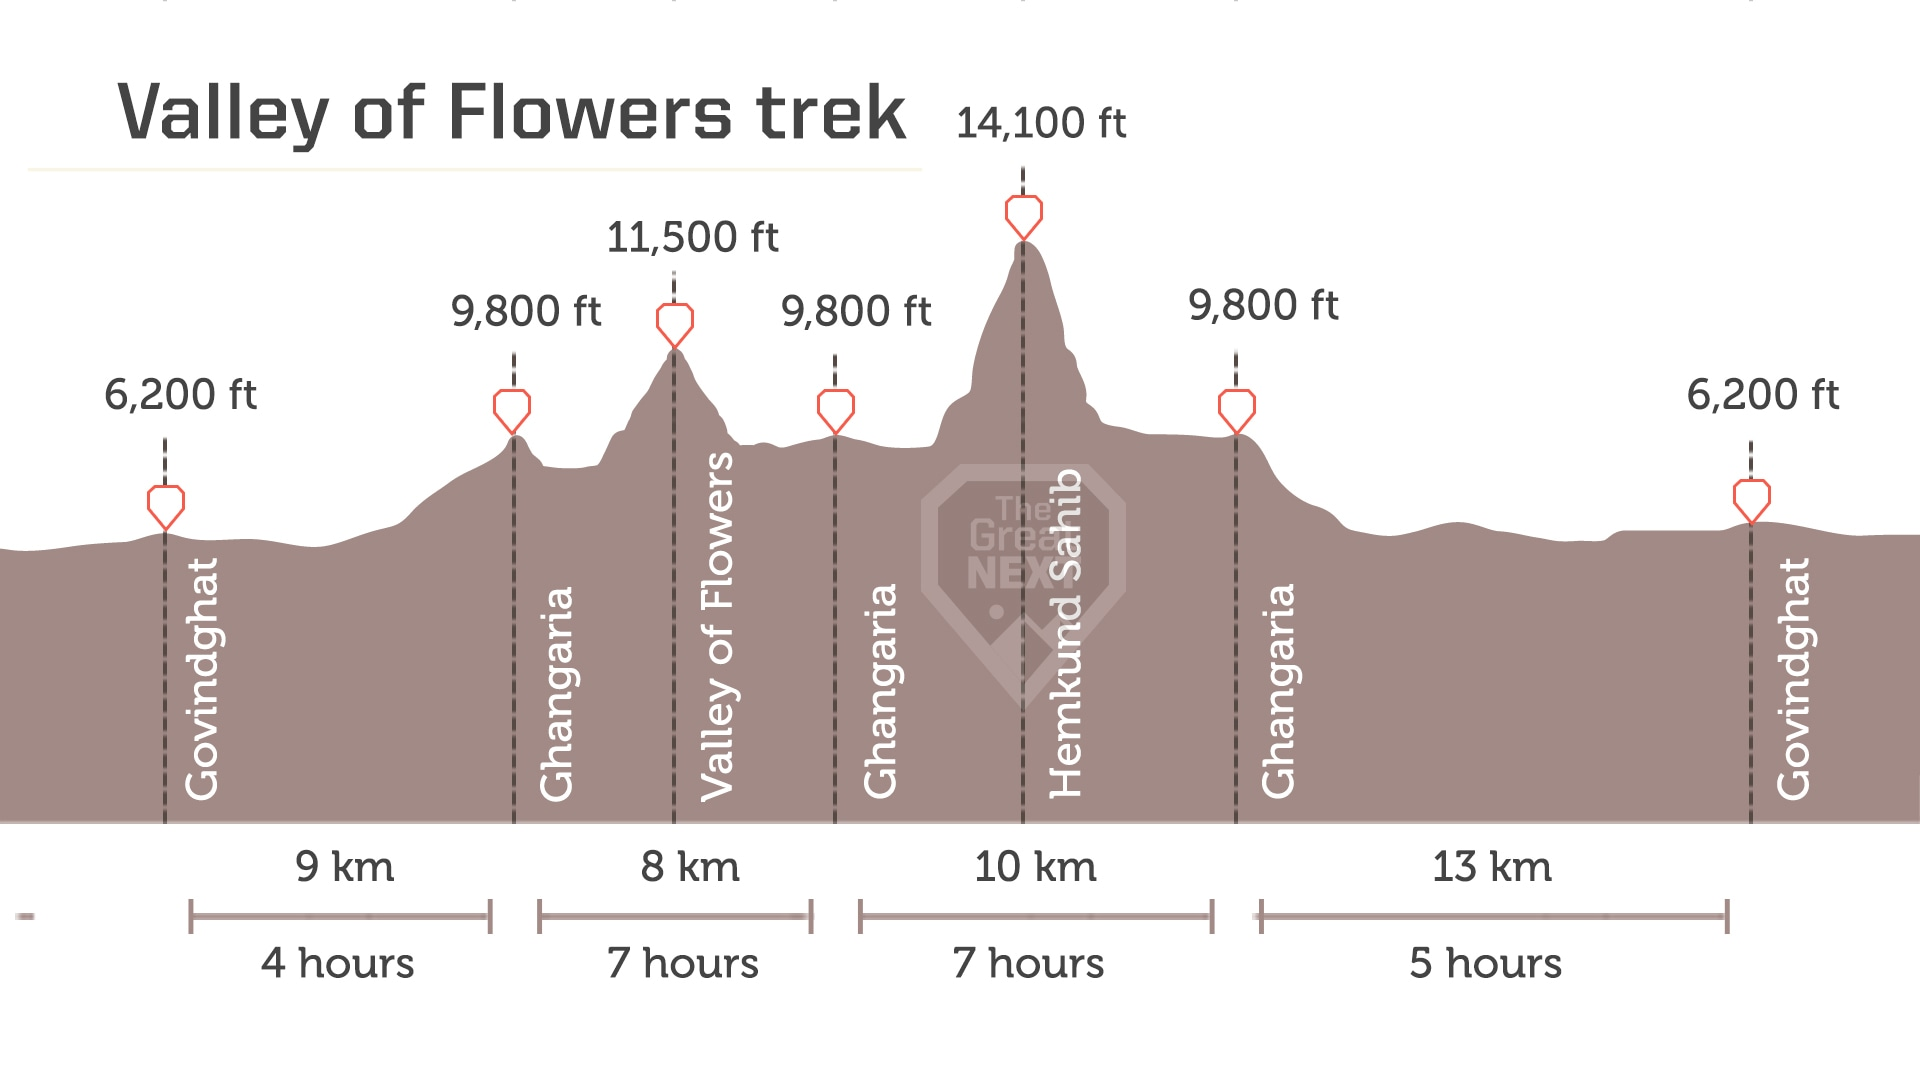 Daily maximum altitude details for the the Valley of Flowers trek in Uttarakhand.